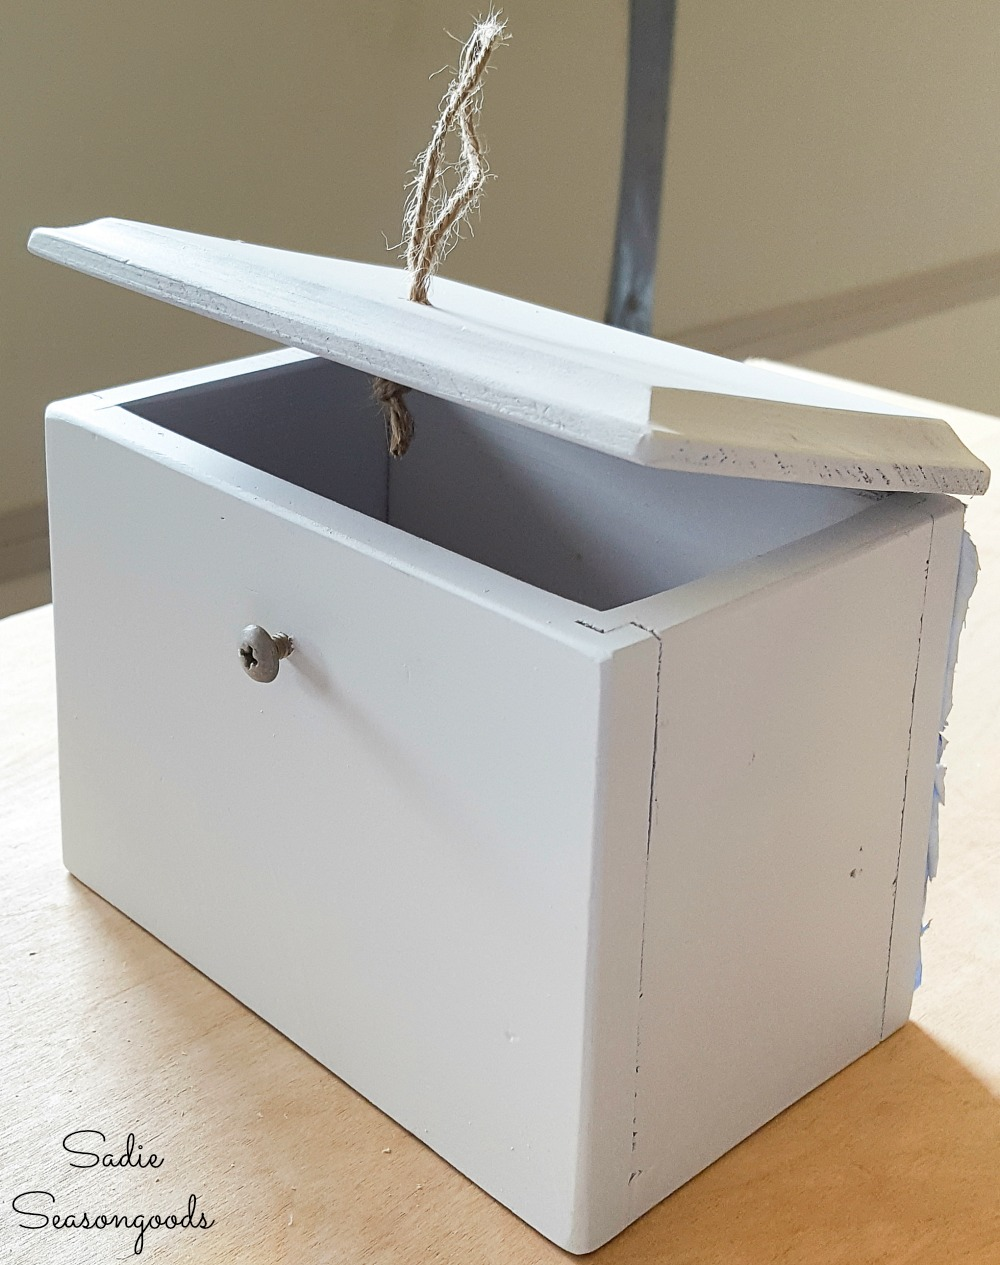 Upcycling a recipe card box for a DIY bottle opener